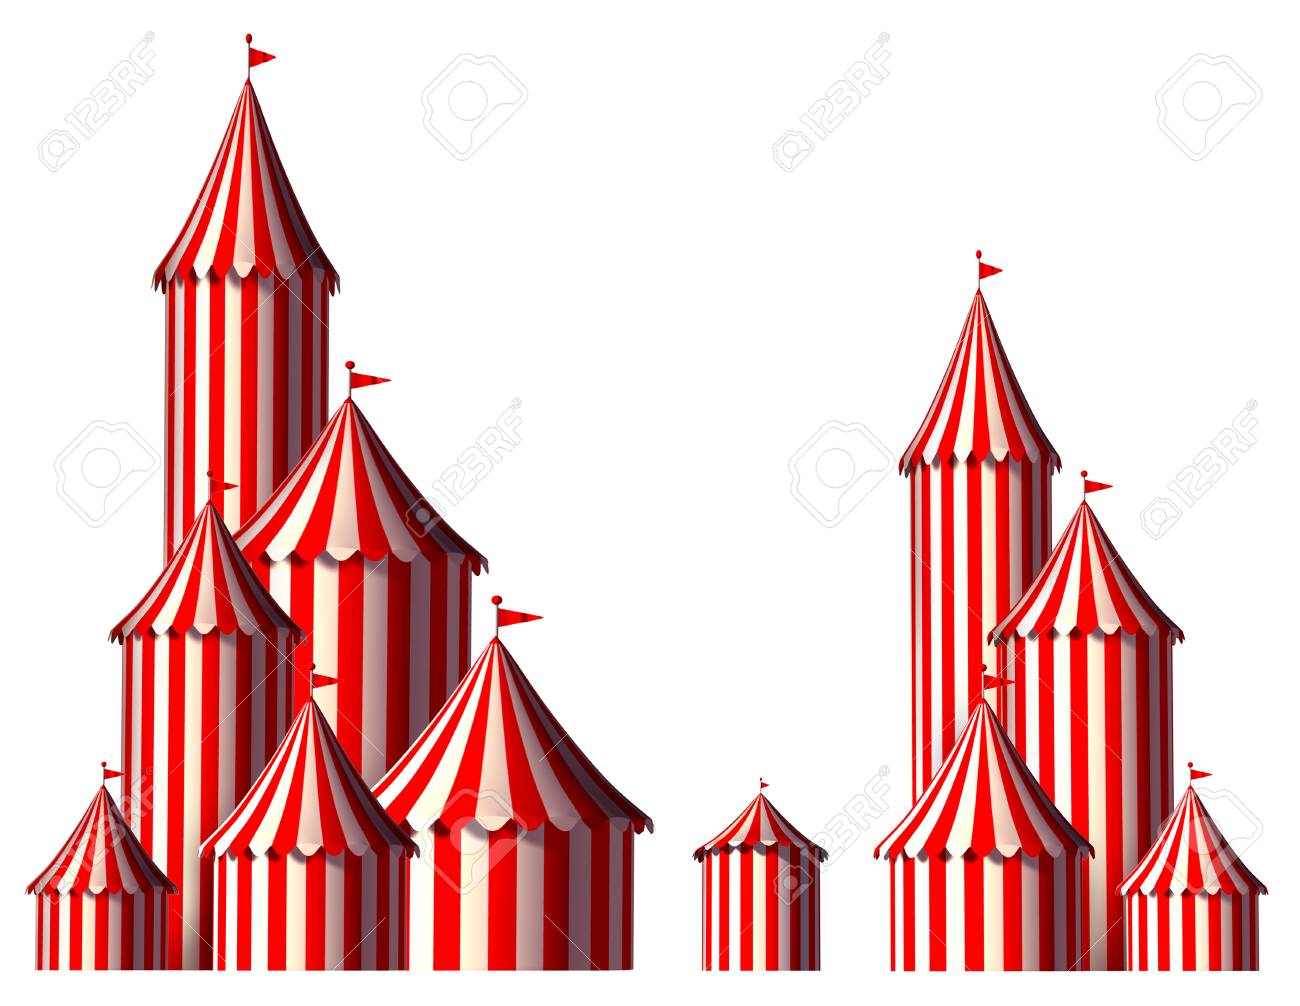 Carnival Tent Clipart Images On Cartoon Broxtern  sc 1 st  Best Tent 2018 & Carnival Tent For Sale - Best Tent 2018